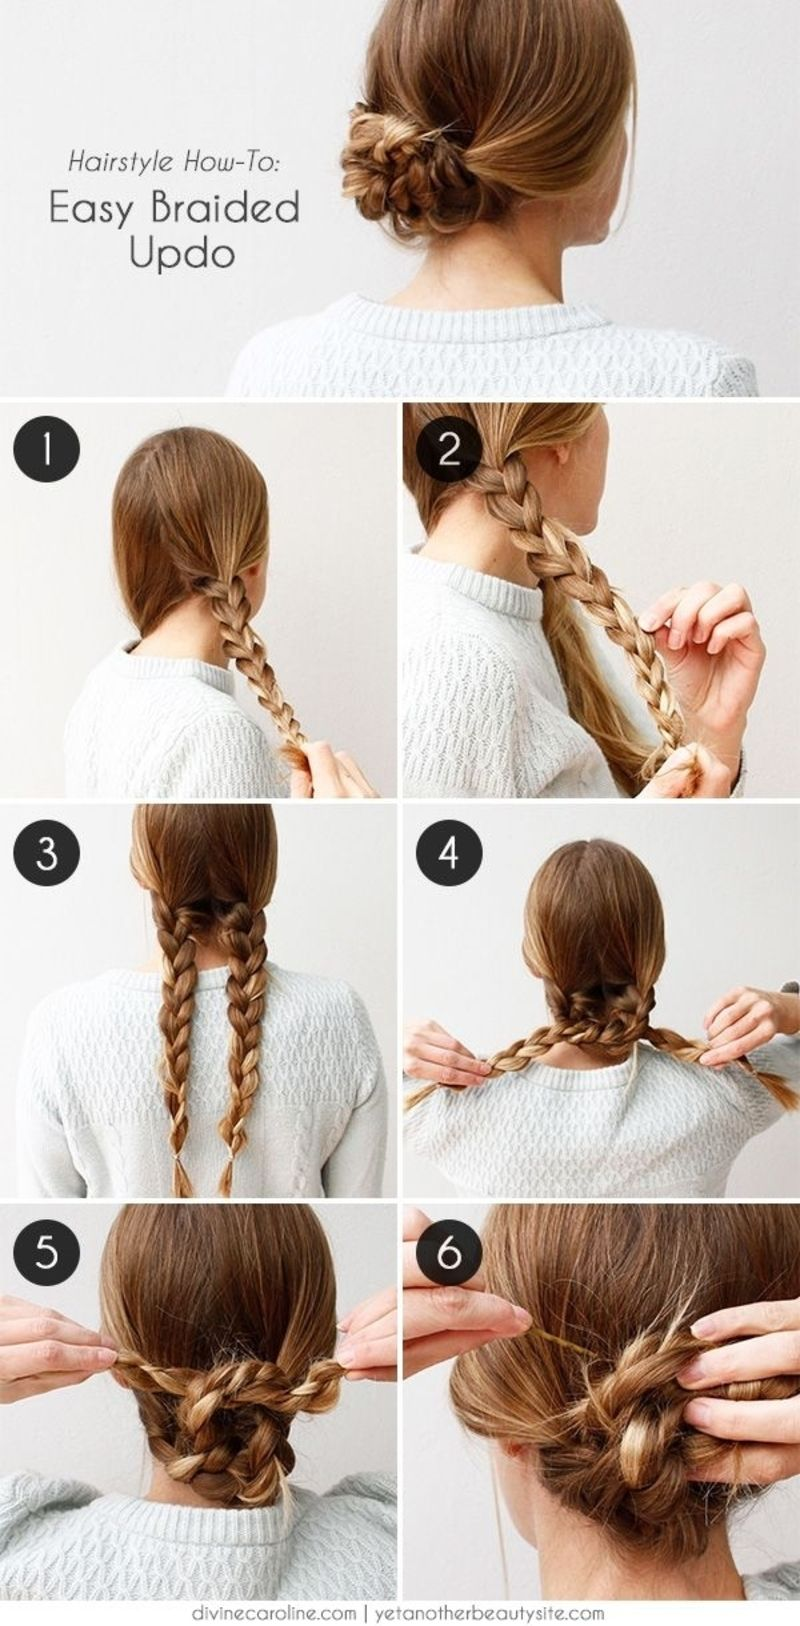 Easy Braided Hairstyle For Any Occasion Braided Hairstyles Easy Hair Styles Easy Braided Updo